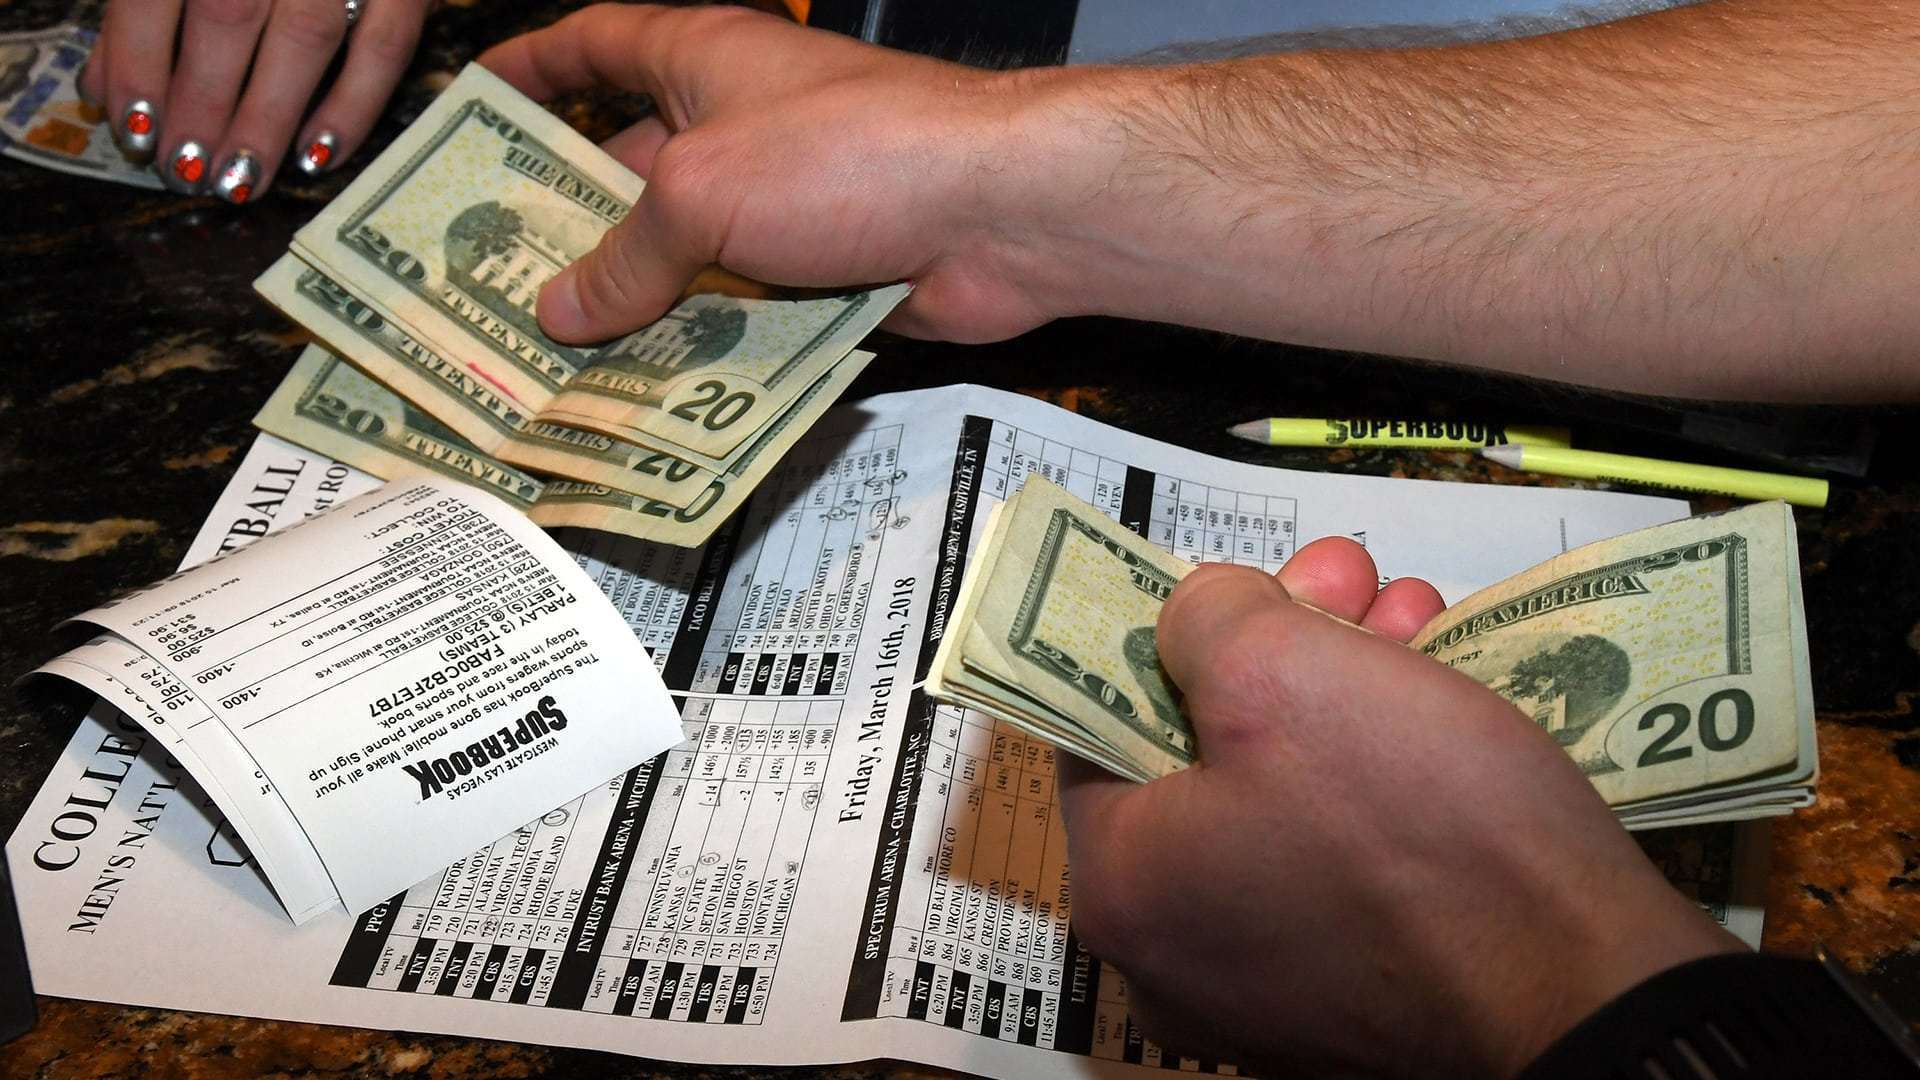 March Madness odds sports betting